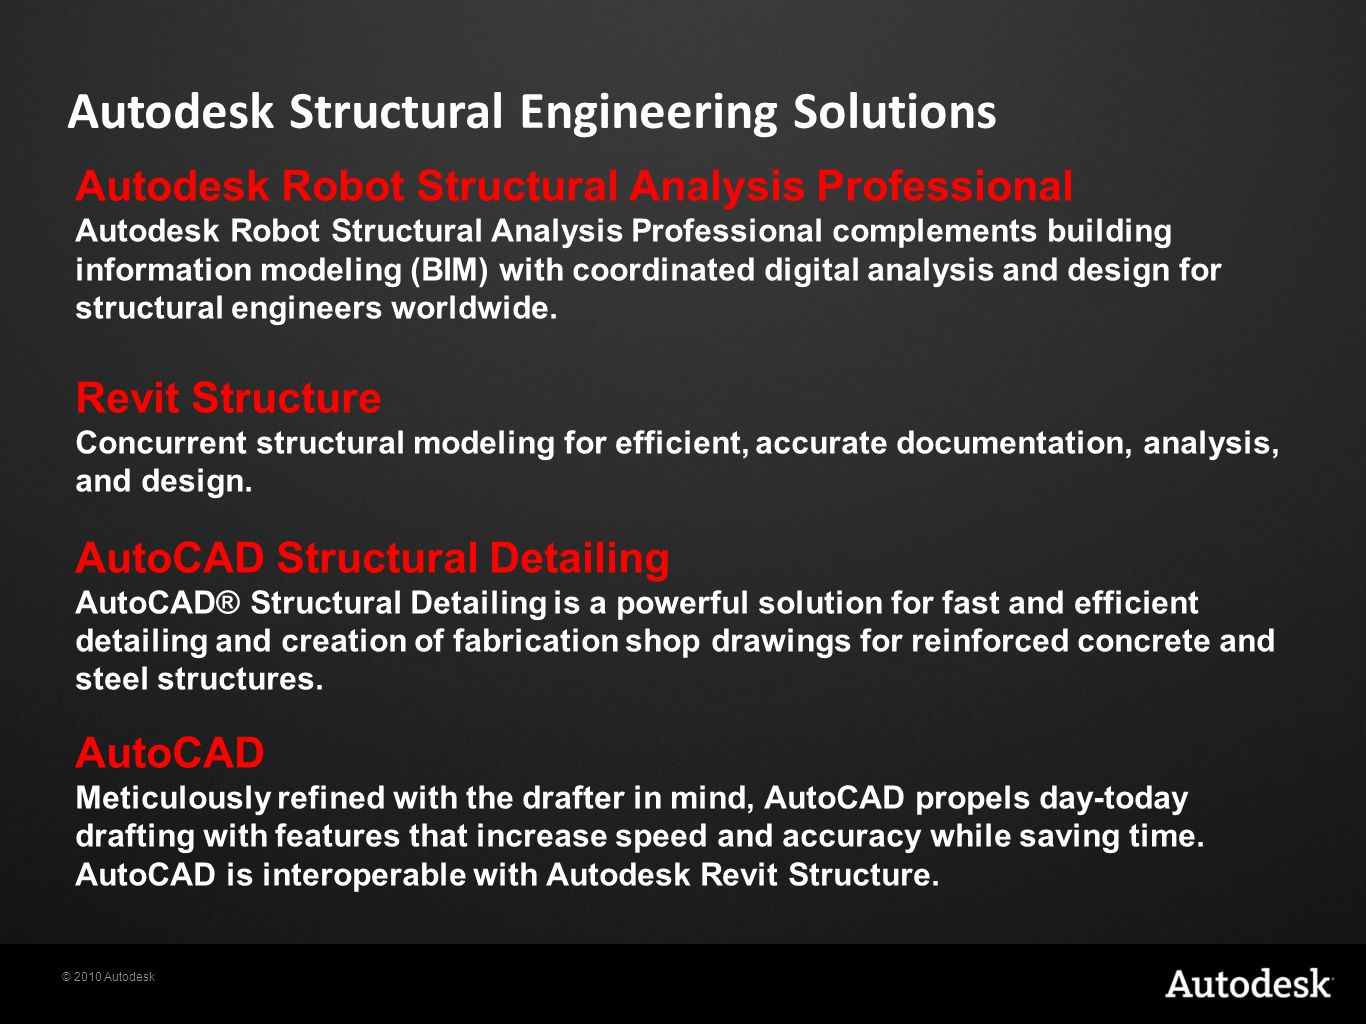 © 2010 Autodesk Autodesk Robot Structural Analysis Professional Autodesk Robot Structural Analysis Professional complements building information modeling (BIM) with coordinated digital analysis and design for structural engineers worldwide.